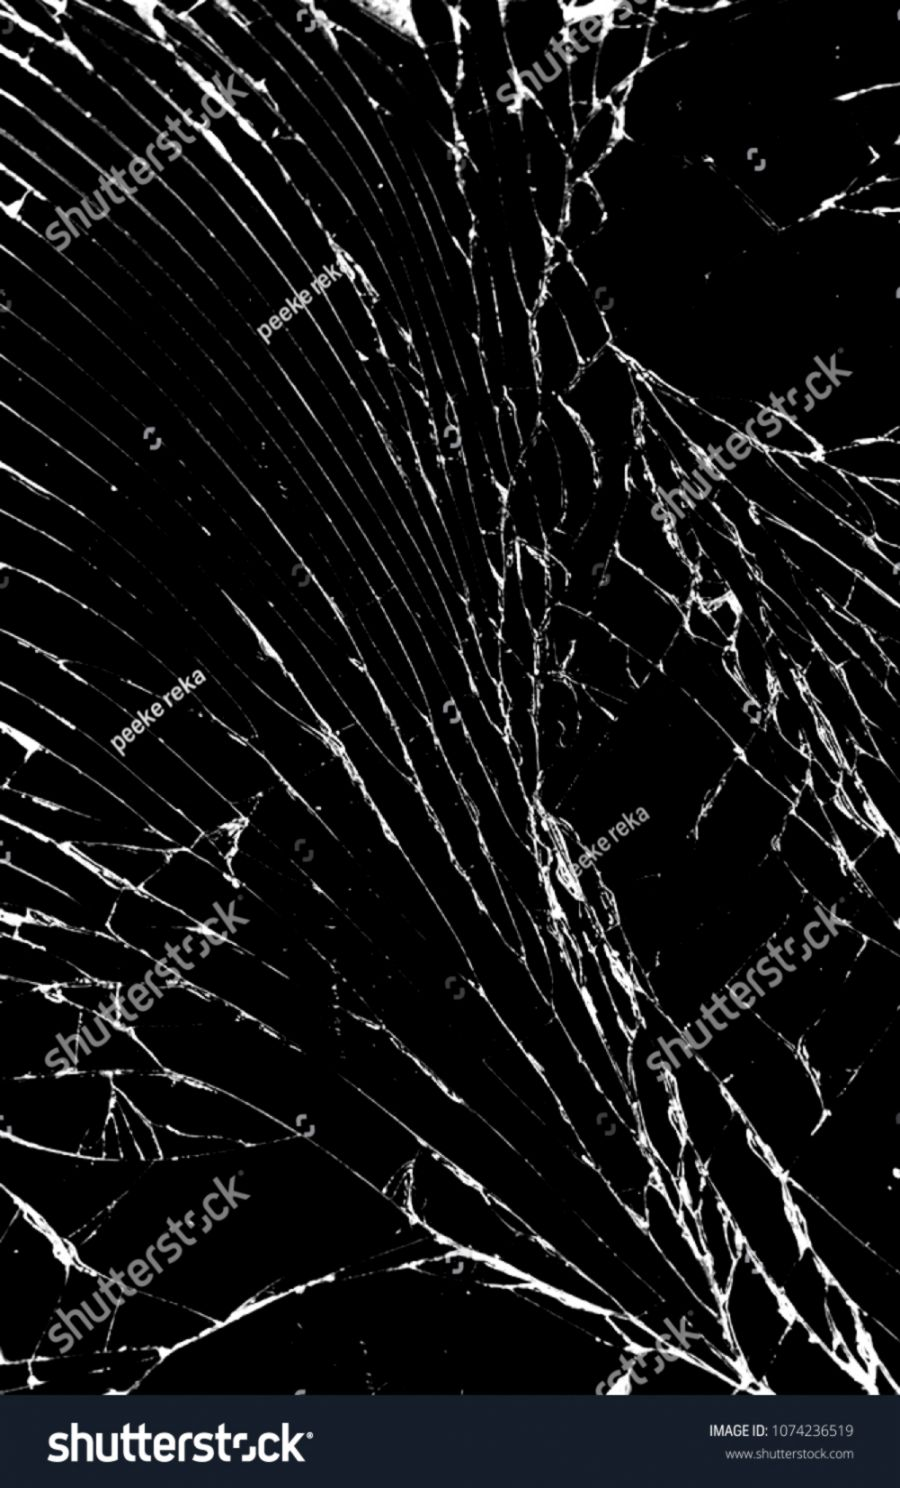 Broken Screen Wallpaper Iphone Wallpapers Awards